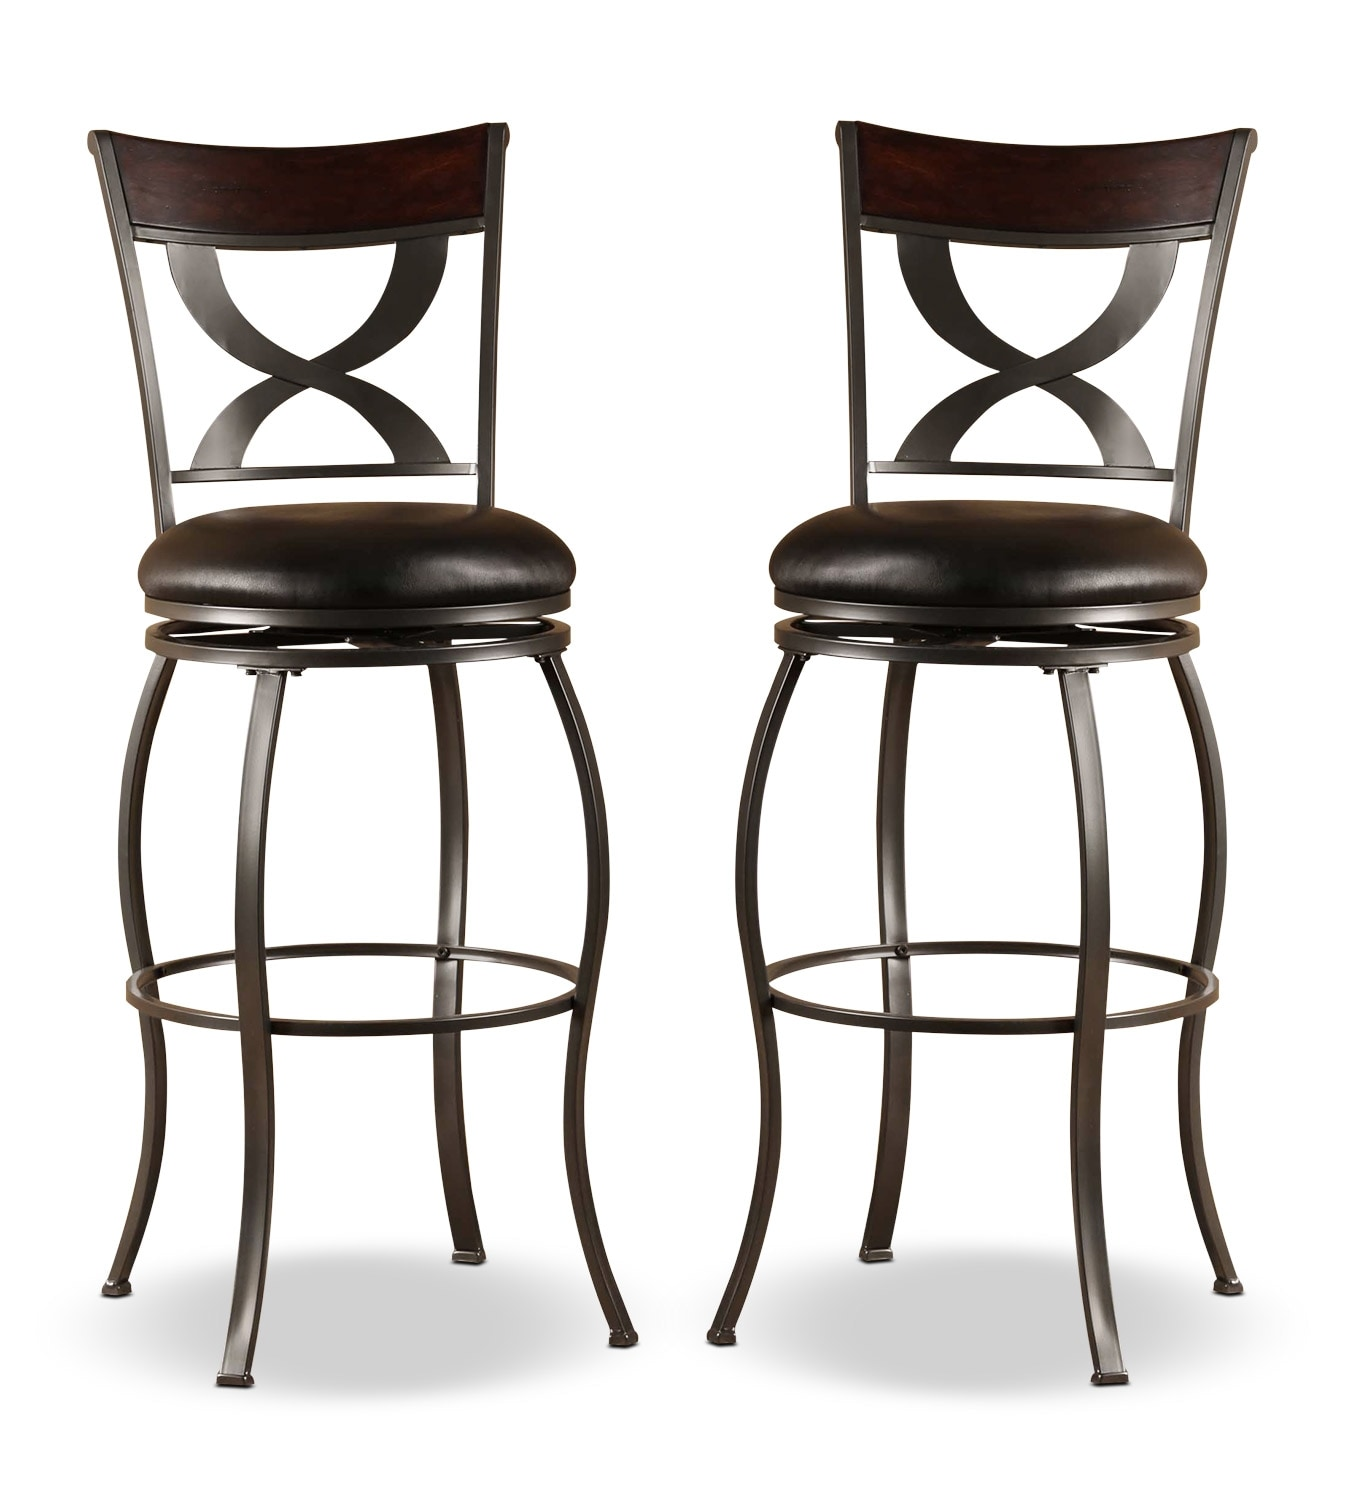 Stockport Counter Height Swivel Stool Set of 2 The Brick : 374363 from www.thebrick.com size 1356 x 1500 jpeg 307kB